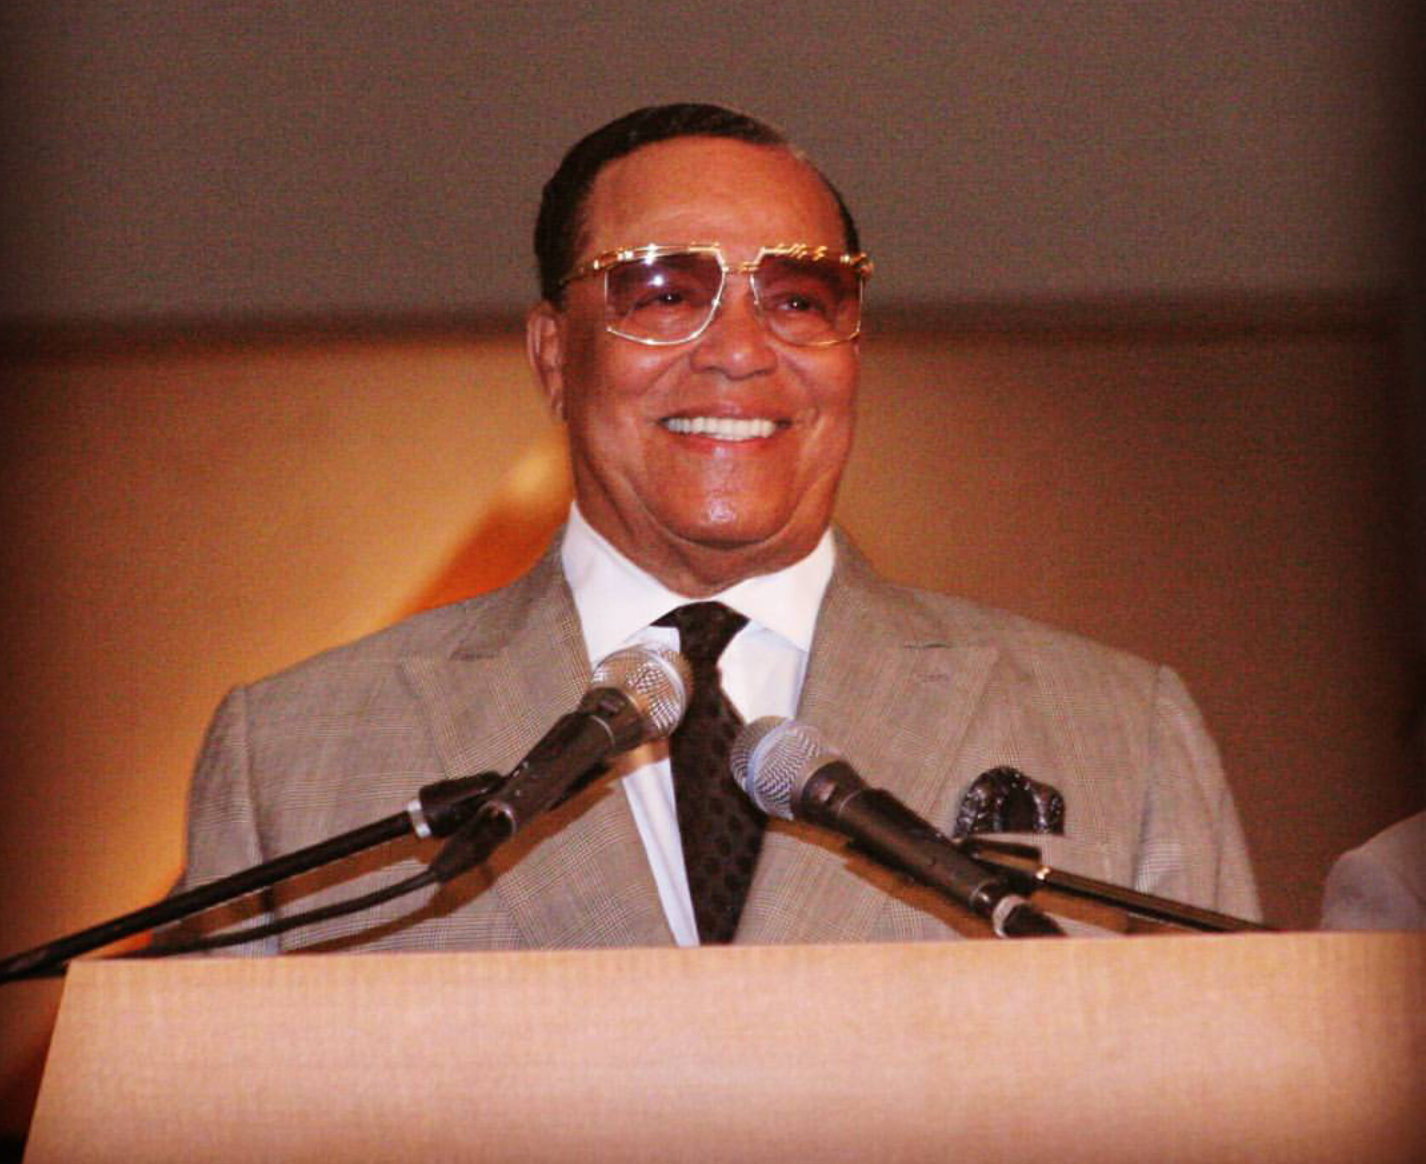 [Special Saviours' Day Tribute] The Minister is such a beautiful person, inside and out.